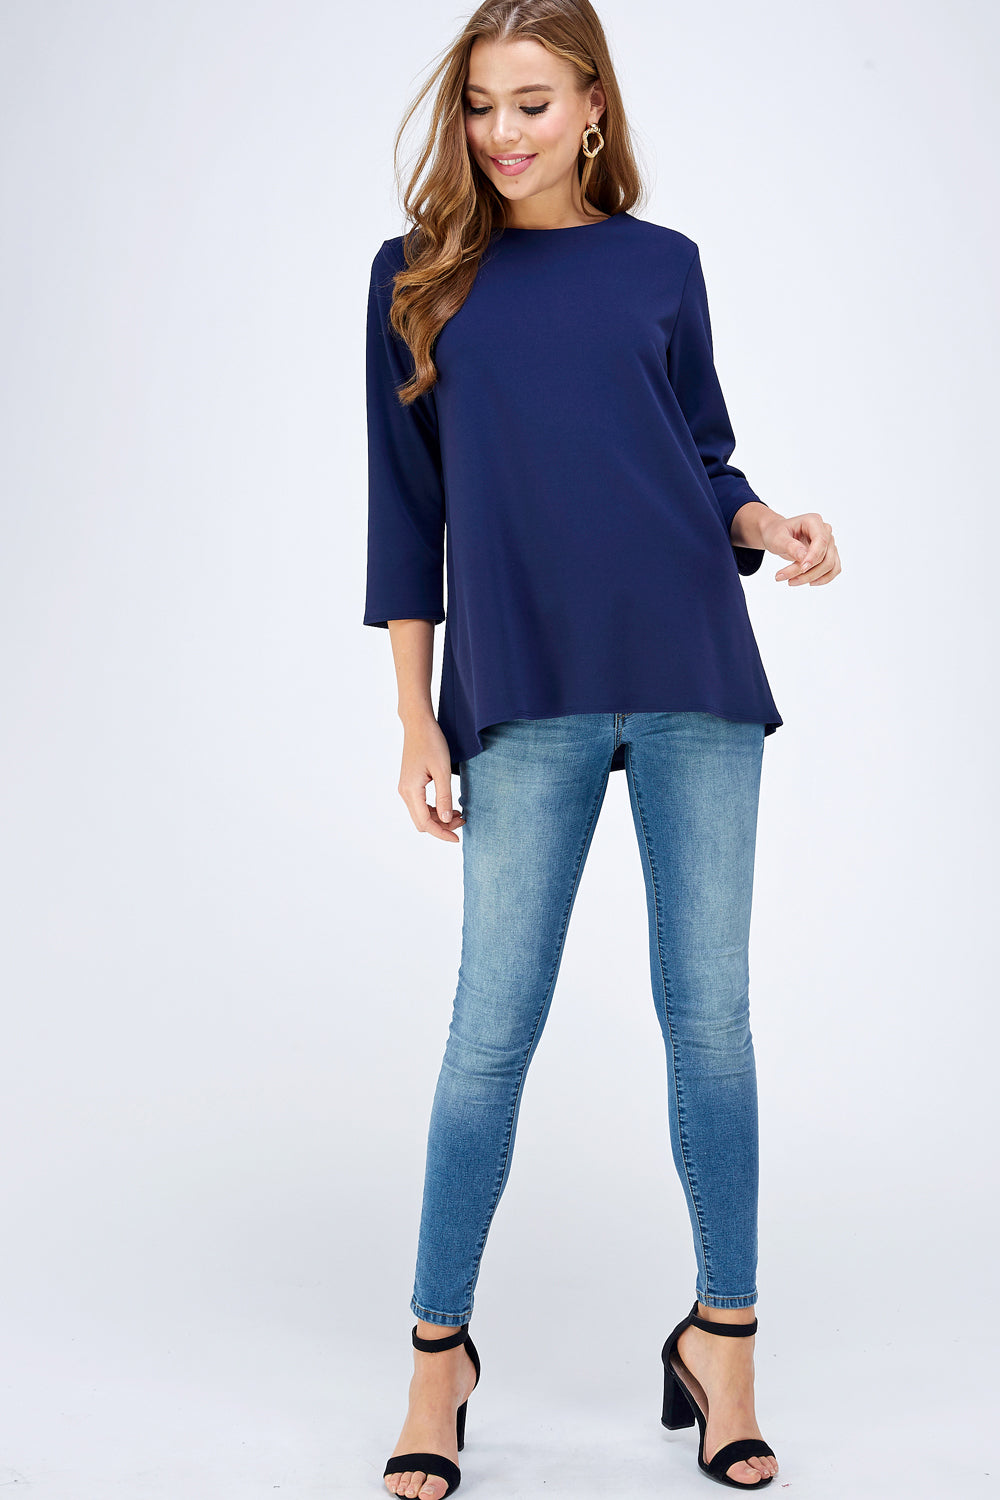 A Heart For The Classics Blouse in Navy - Top - MIA Boutique LLC